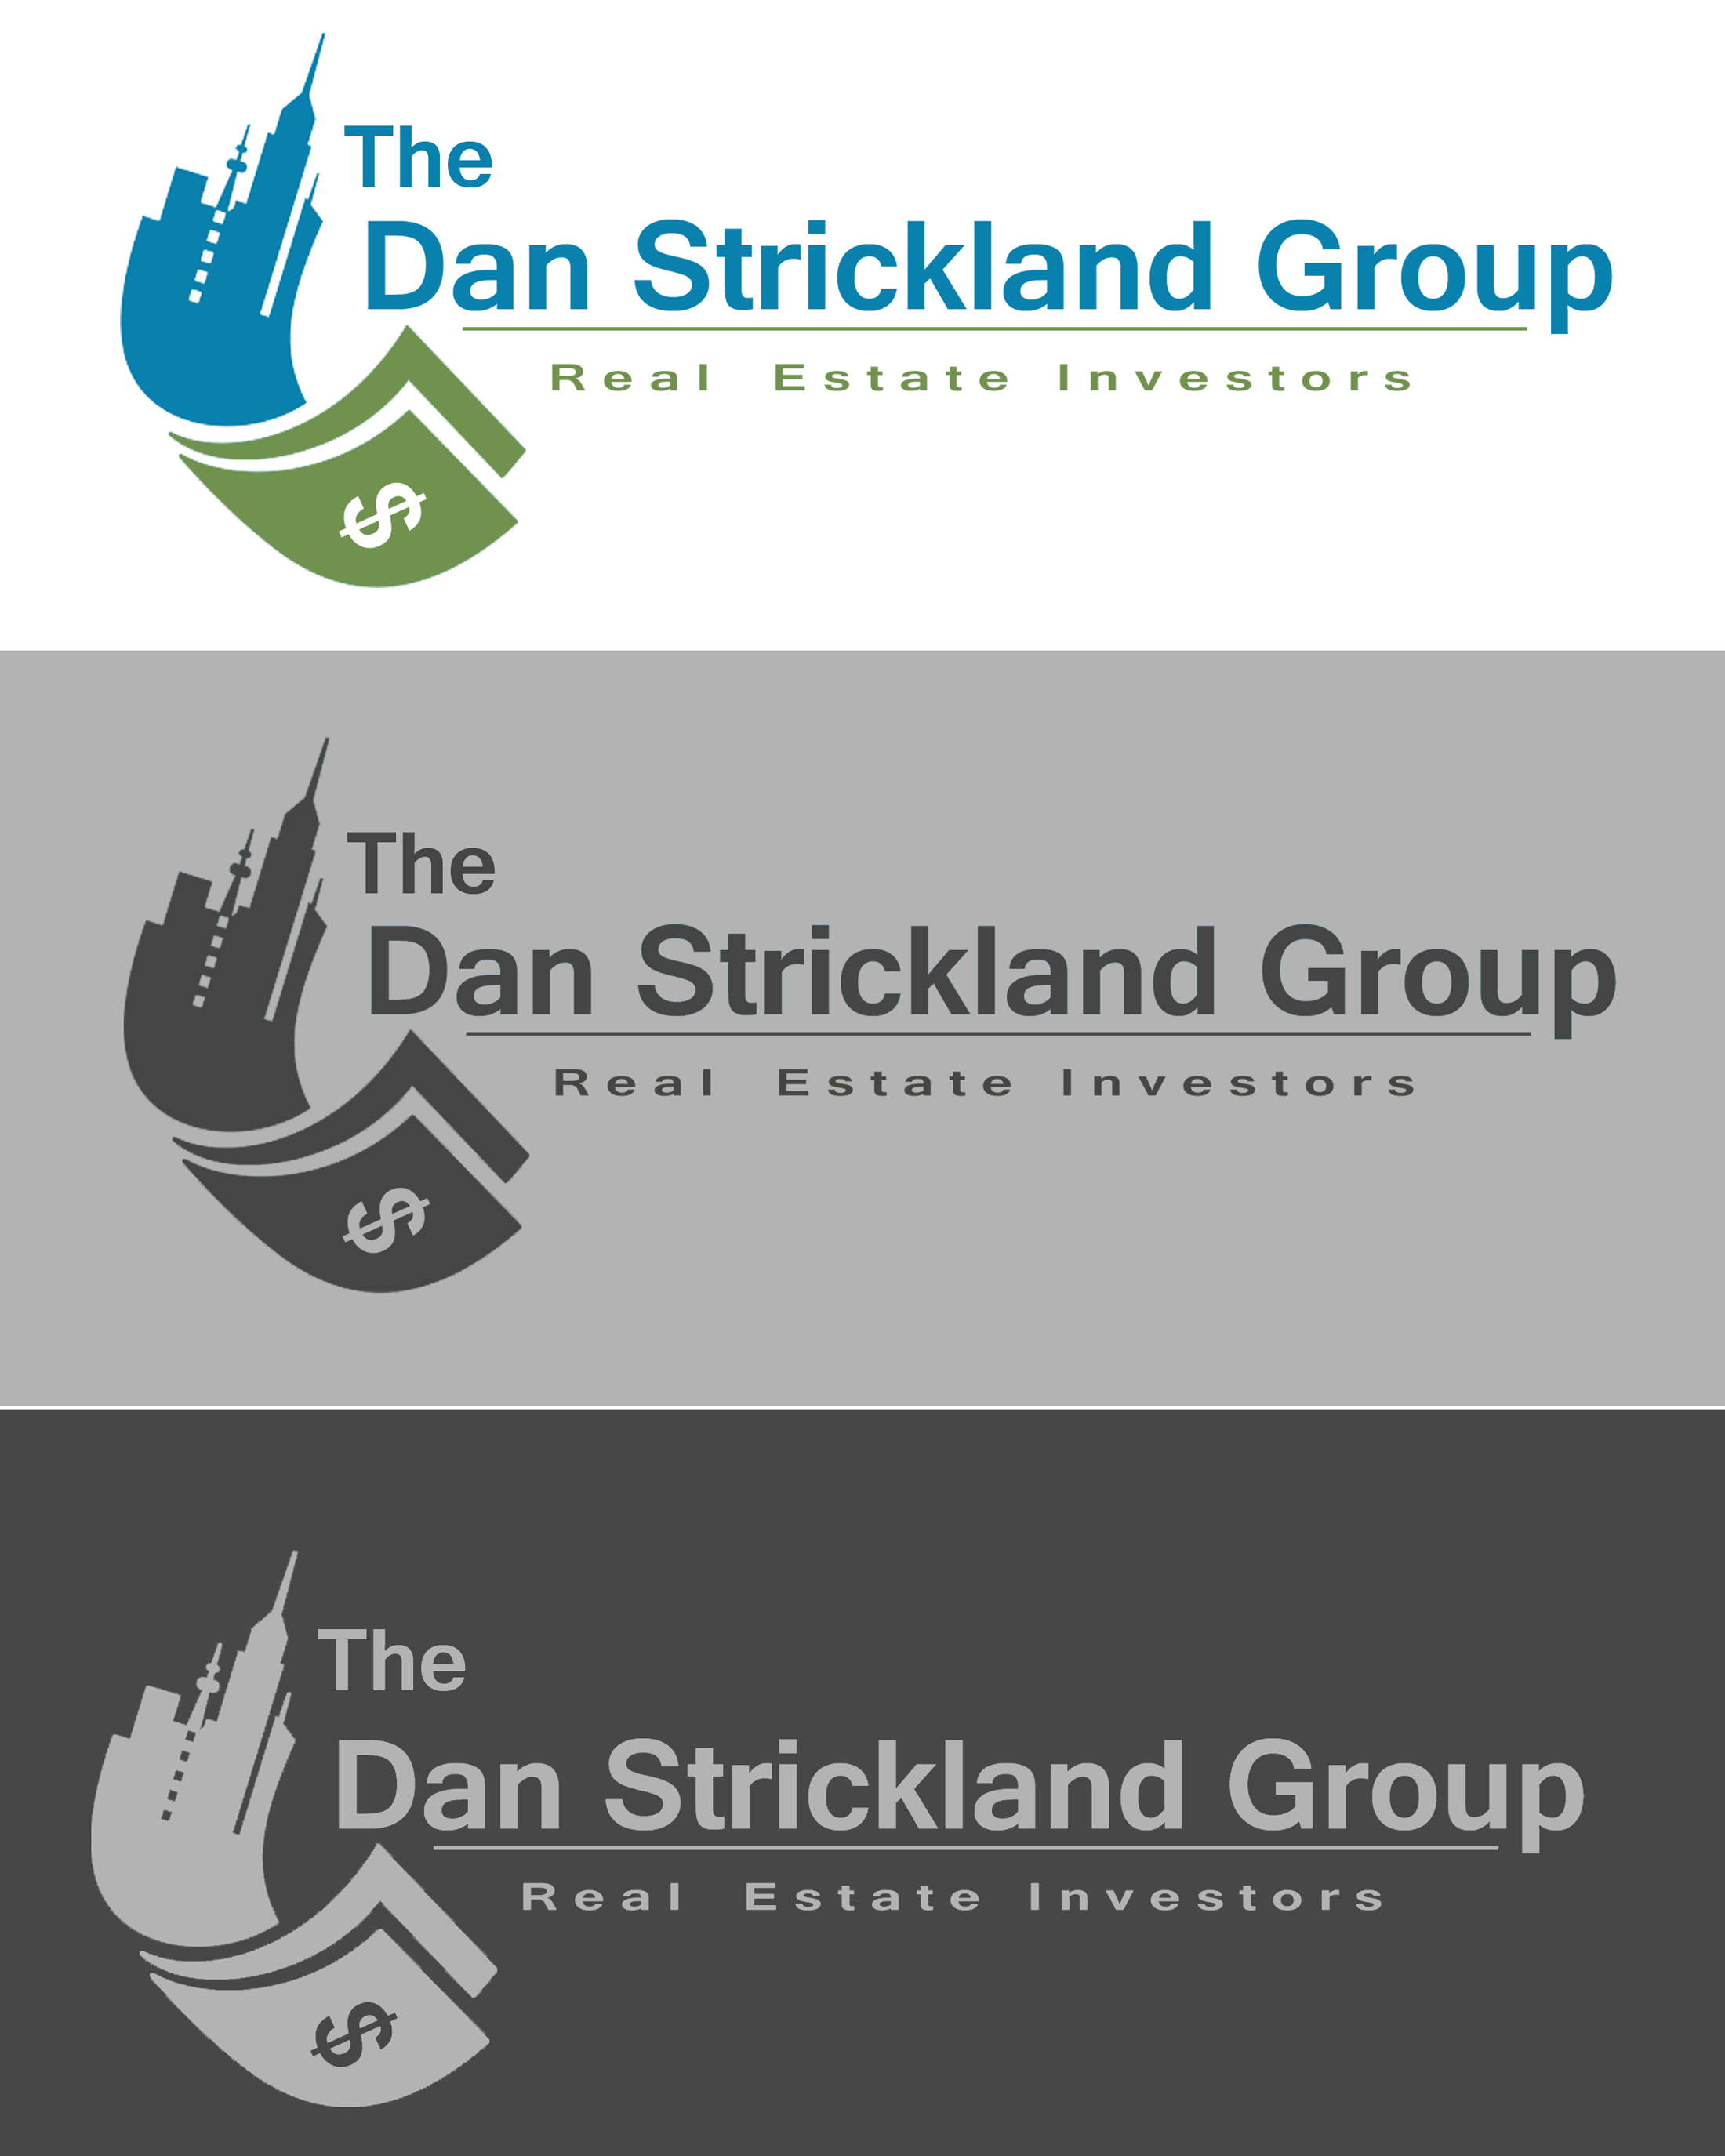 Logo Design by Jack Rajgor - Entry No. 241 in the Logo Design Contest Creative Logo Design for The Dan Strickland Group.